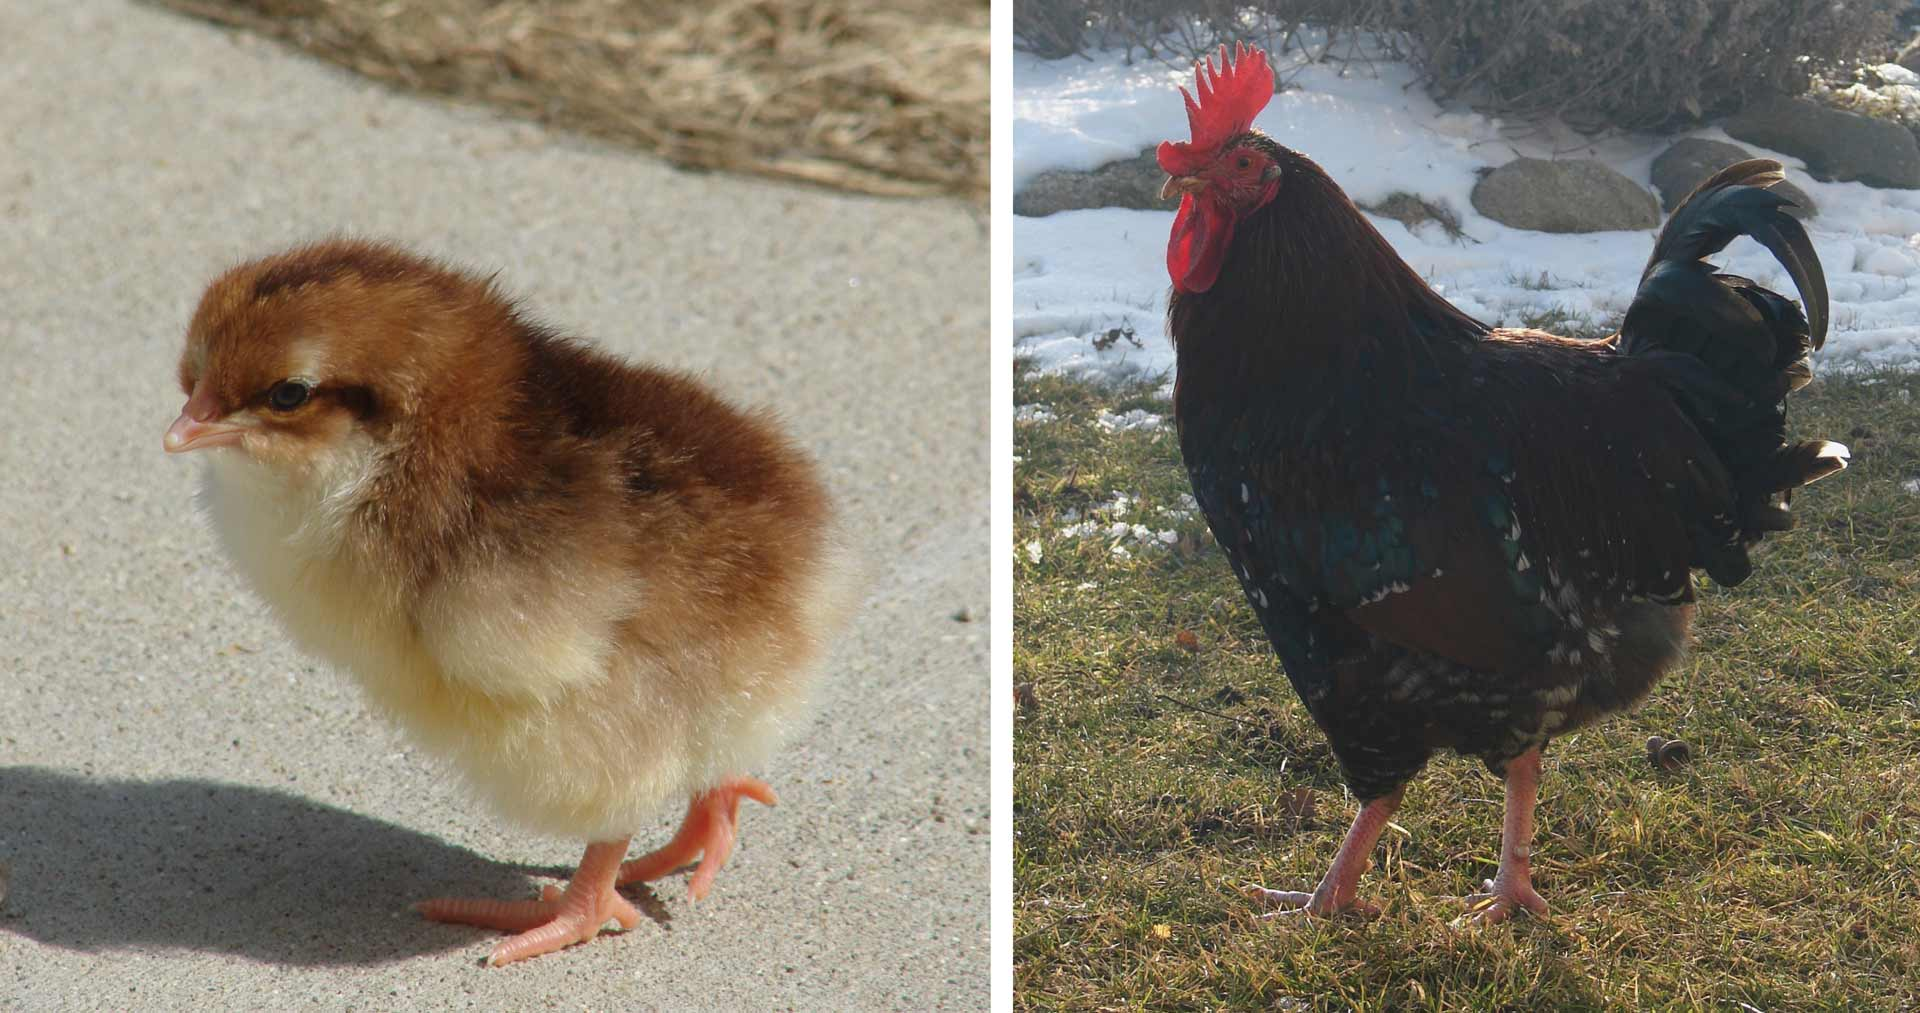 NBS_Pets_Charlie-the-rooster.1920x